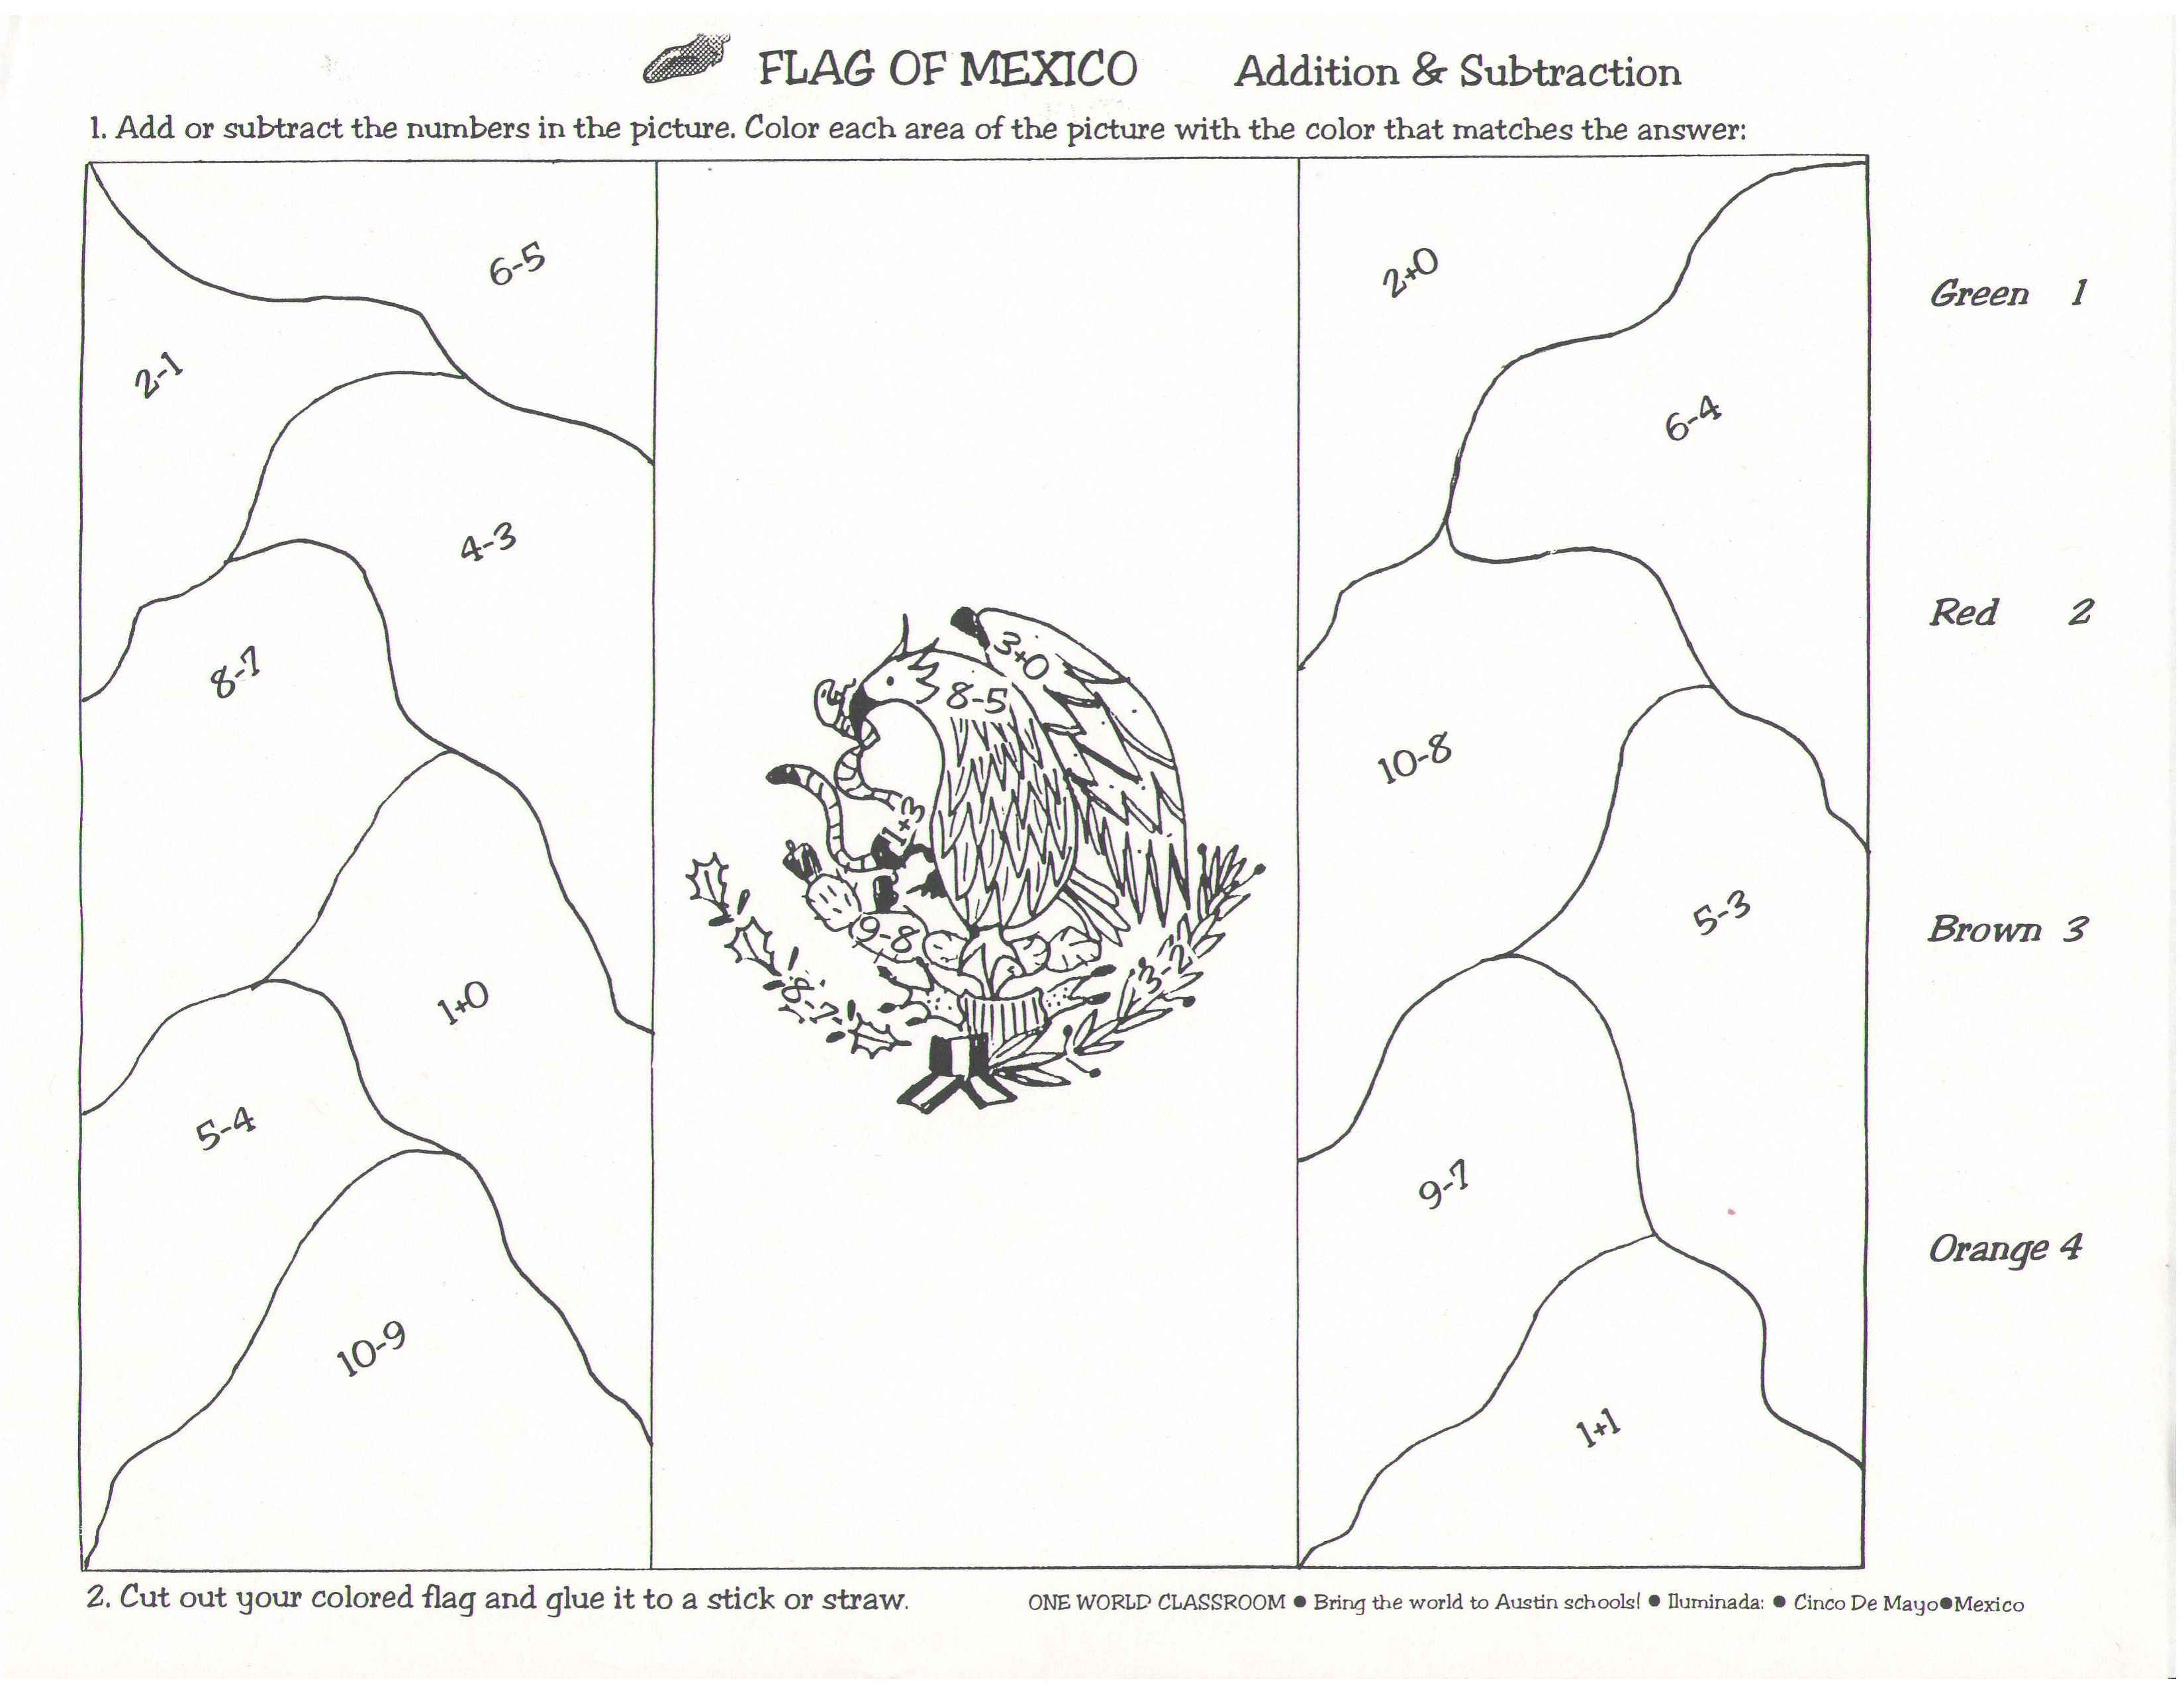 Coloring Pages New Mexico Flag Coloring Page mexico flag coloring page 17 pictures colorinenet 18497 mexican 18497